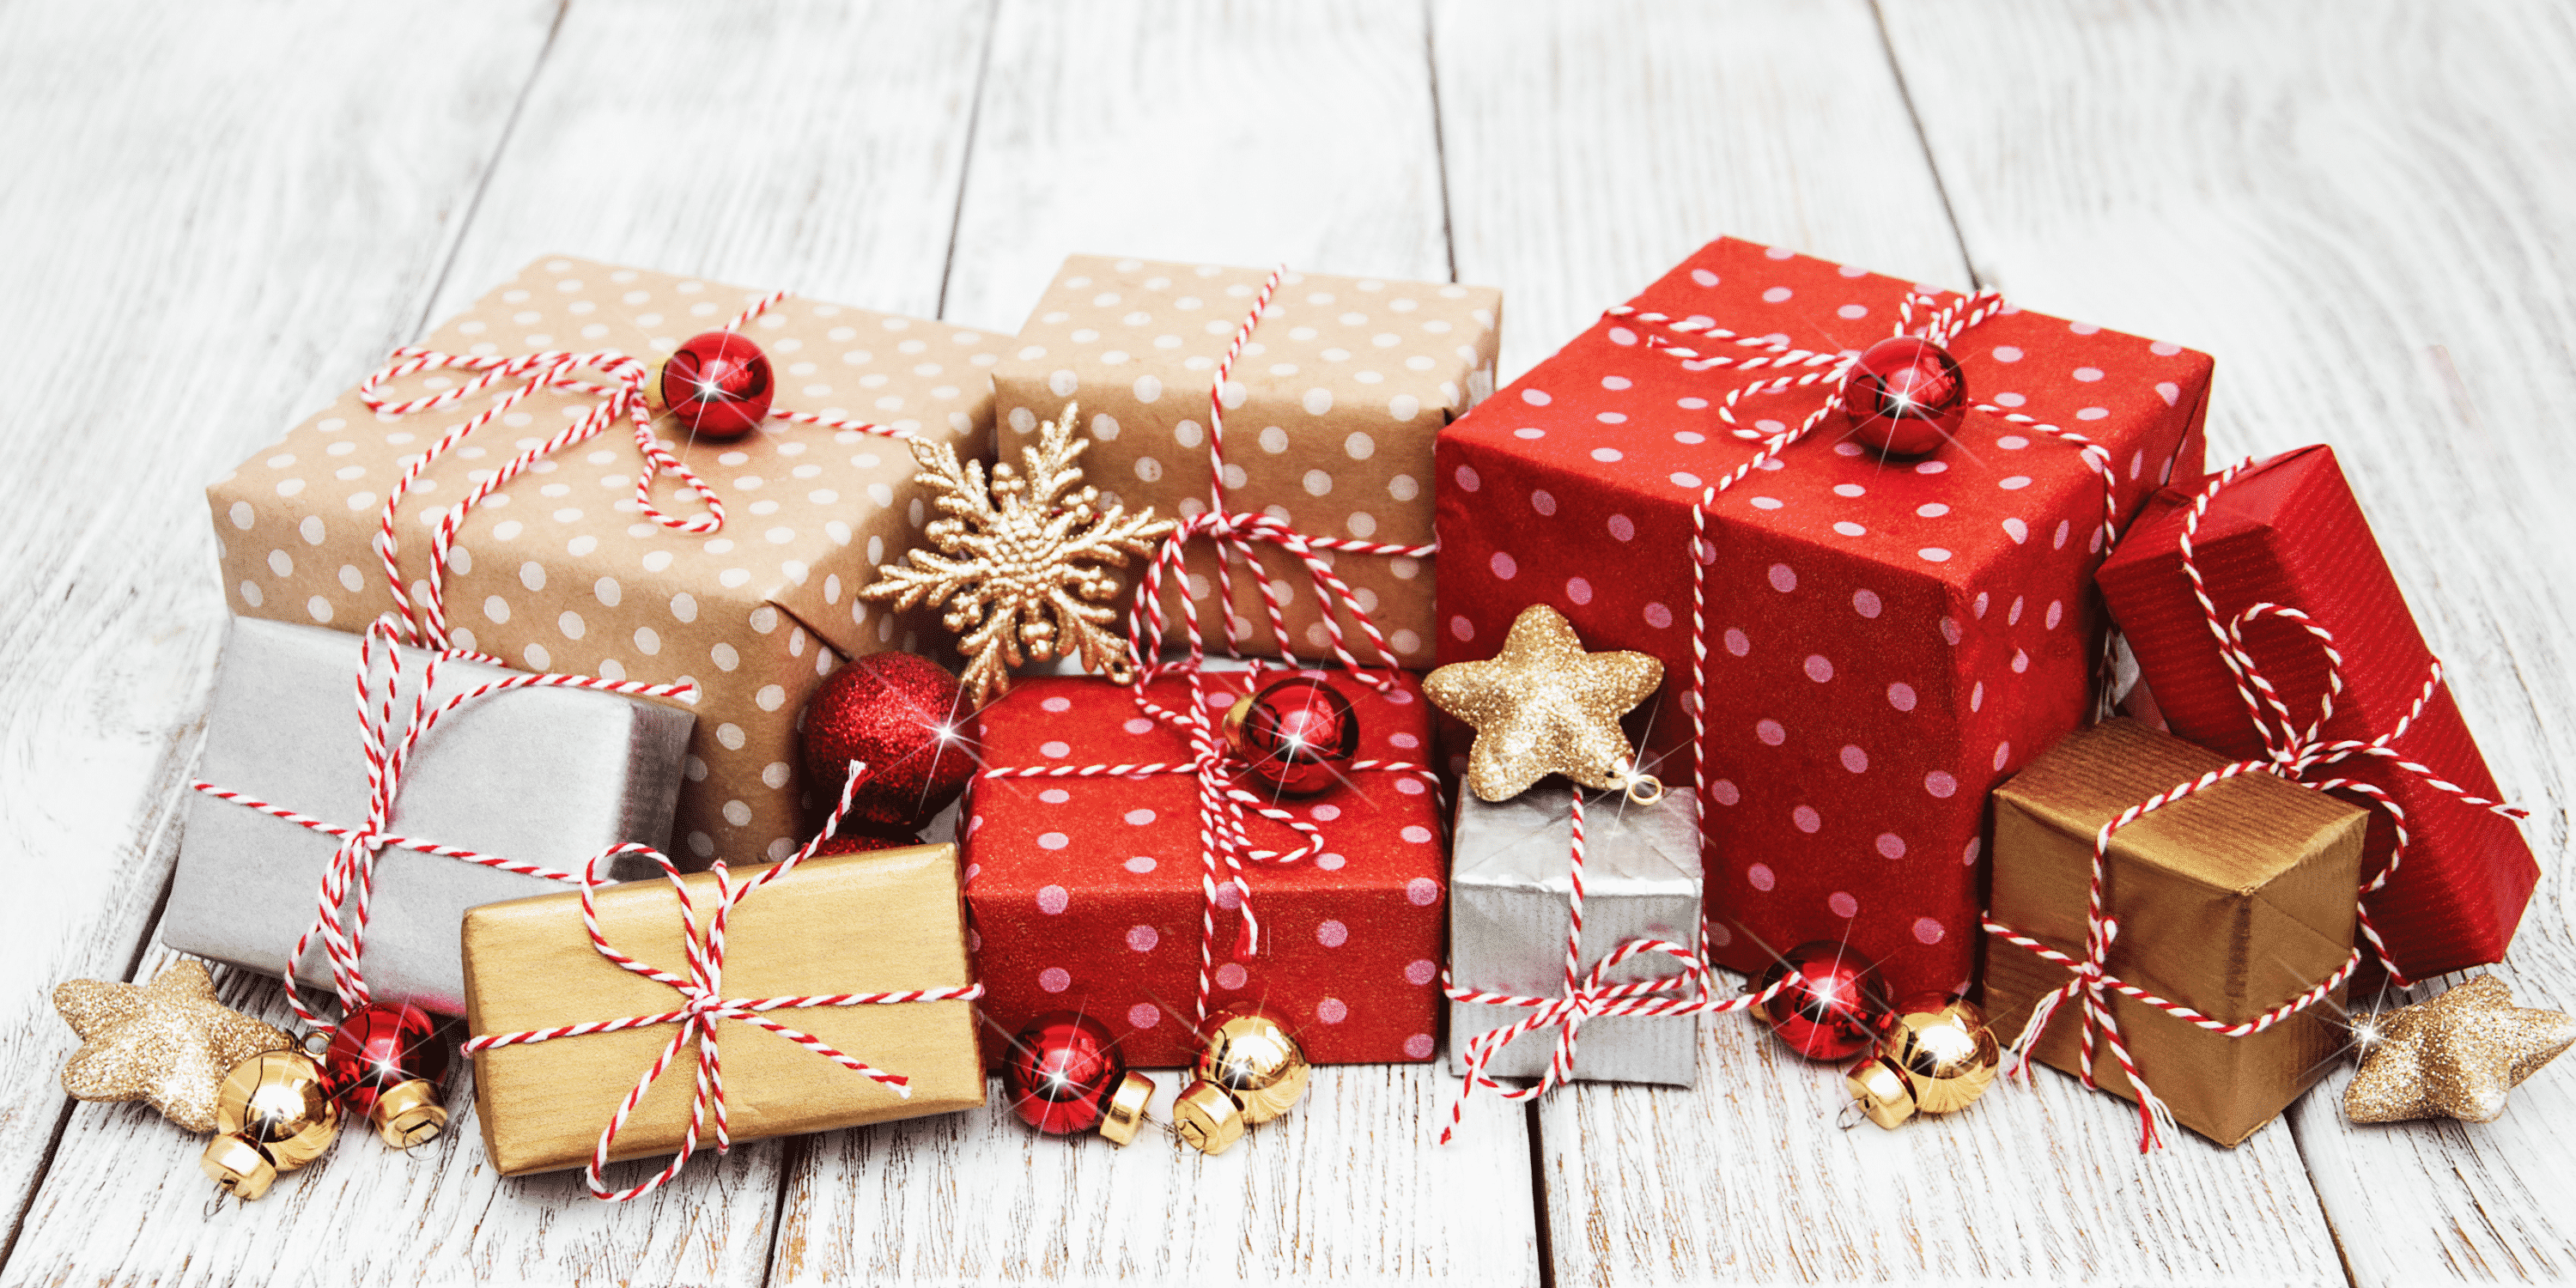 Over 20 Great County Gift ideas